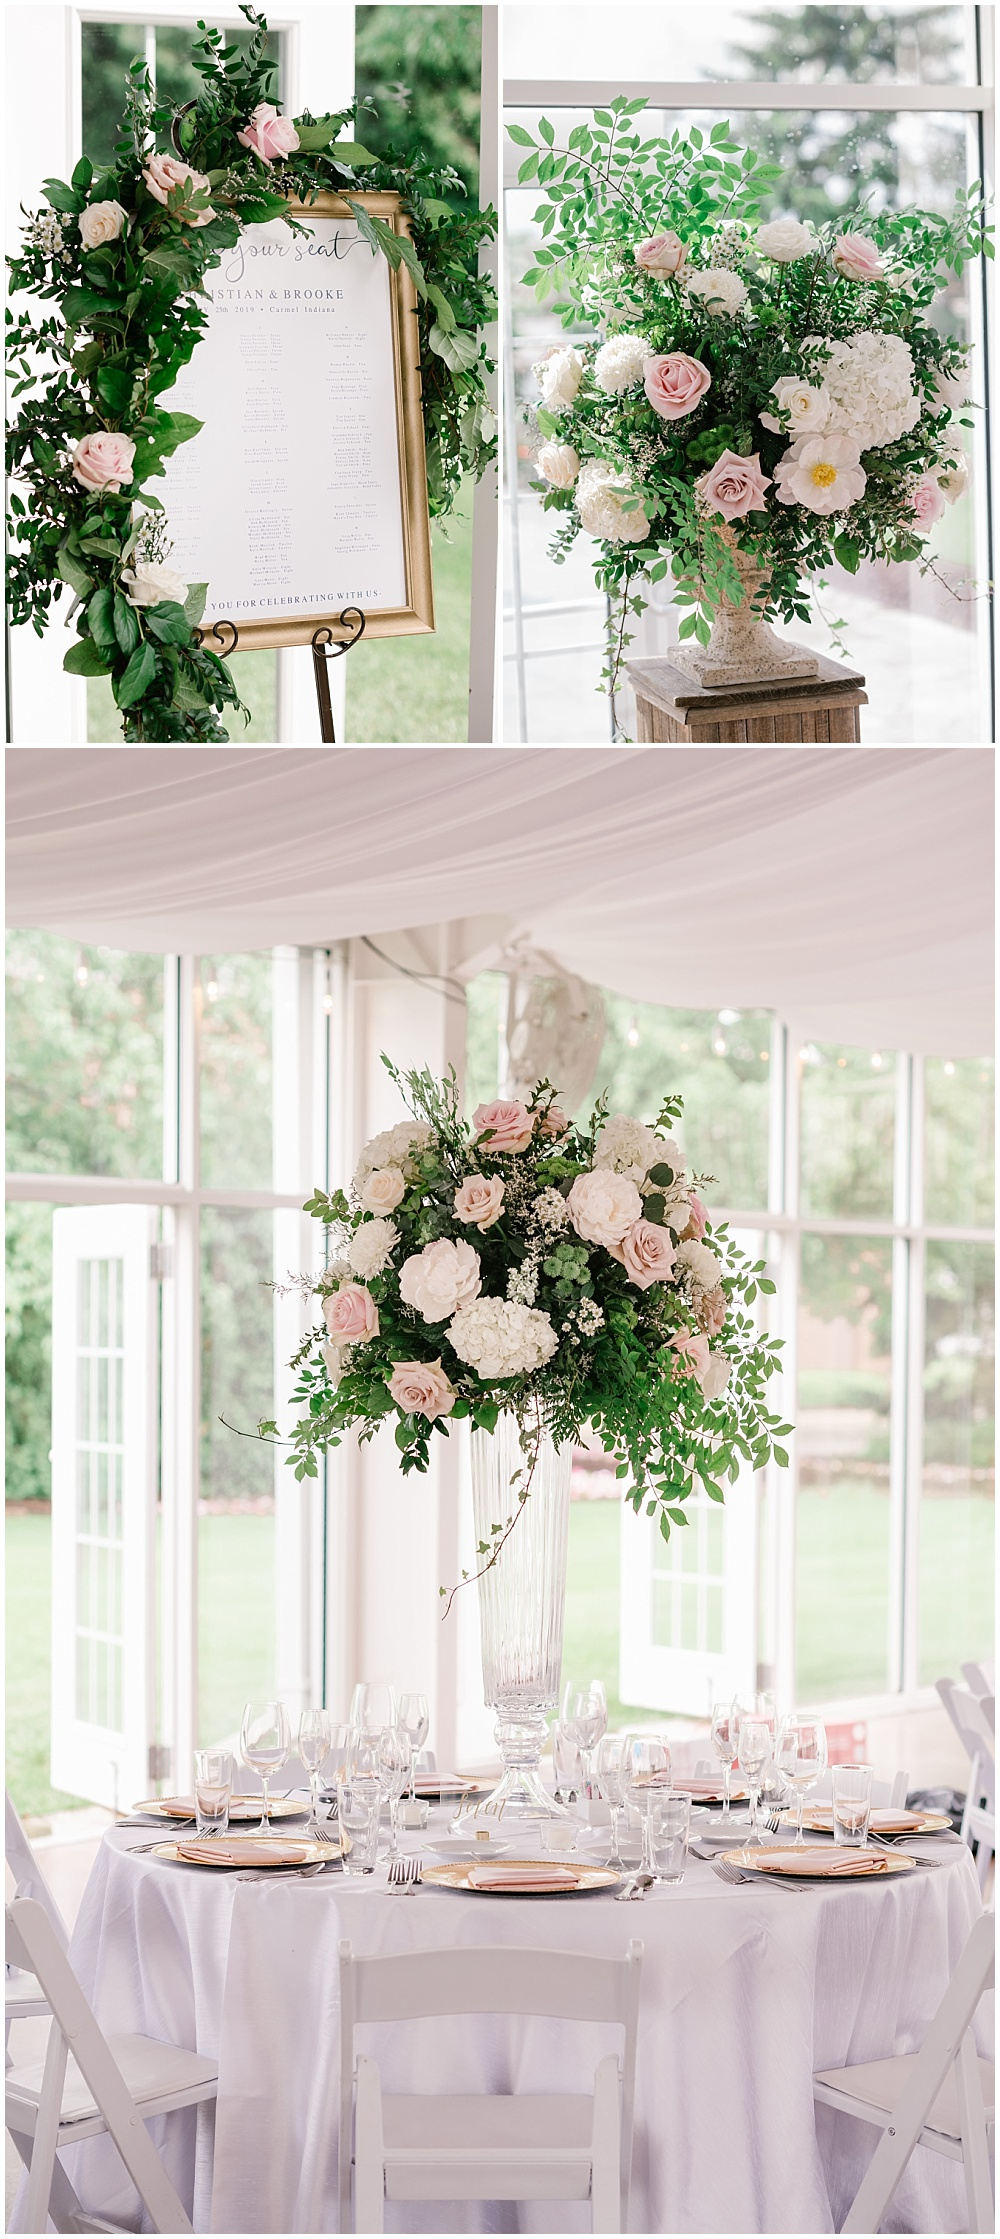 Blush and white wedding flowers with an abundance of greenery. Blush and gold wedding tablescape and seating chart with corner floral. | Spring blush garden-inspired memorial day weekend wedding at the beautiful Ritz Charles Garden Pavilion with Stacy Able Photography and Jessica Dum Wedding Coordination